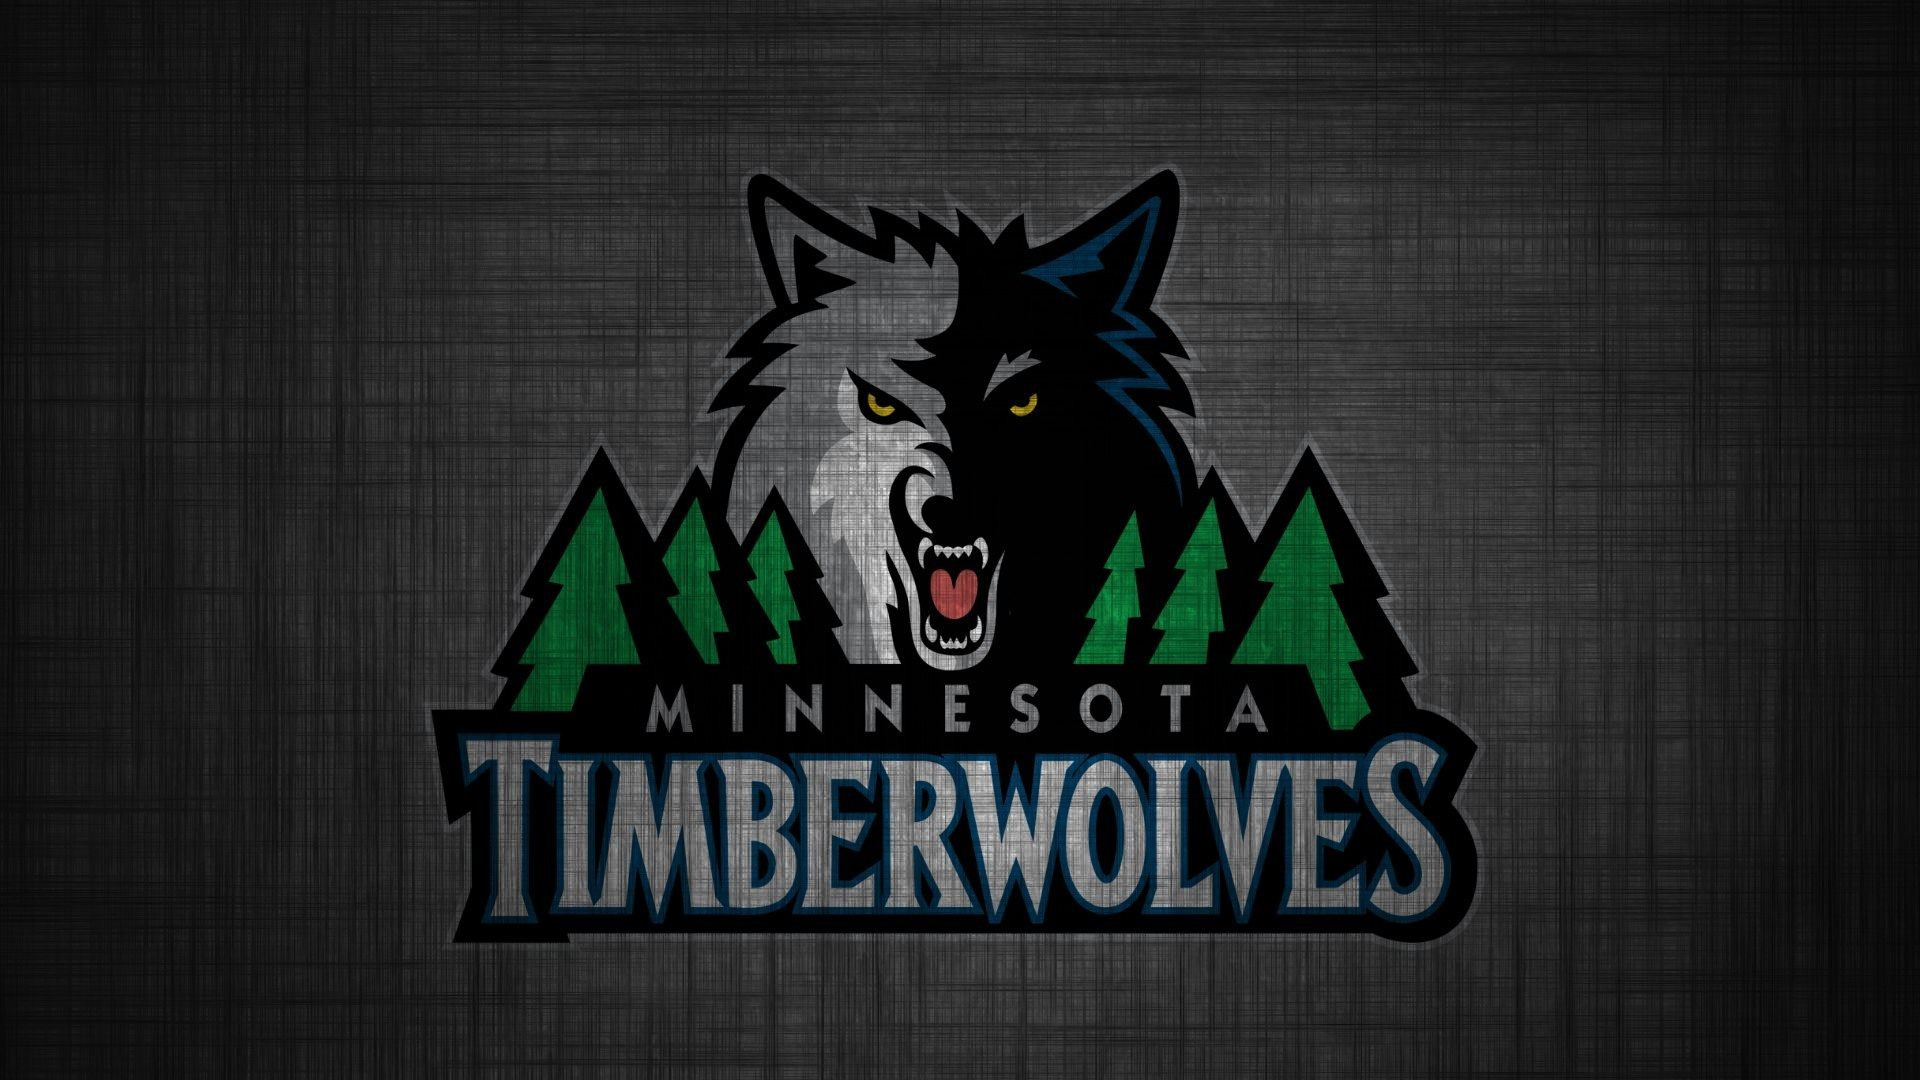 1920x1080 Minnesota Timberwolves wallpaper hd free download